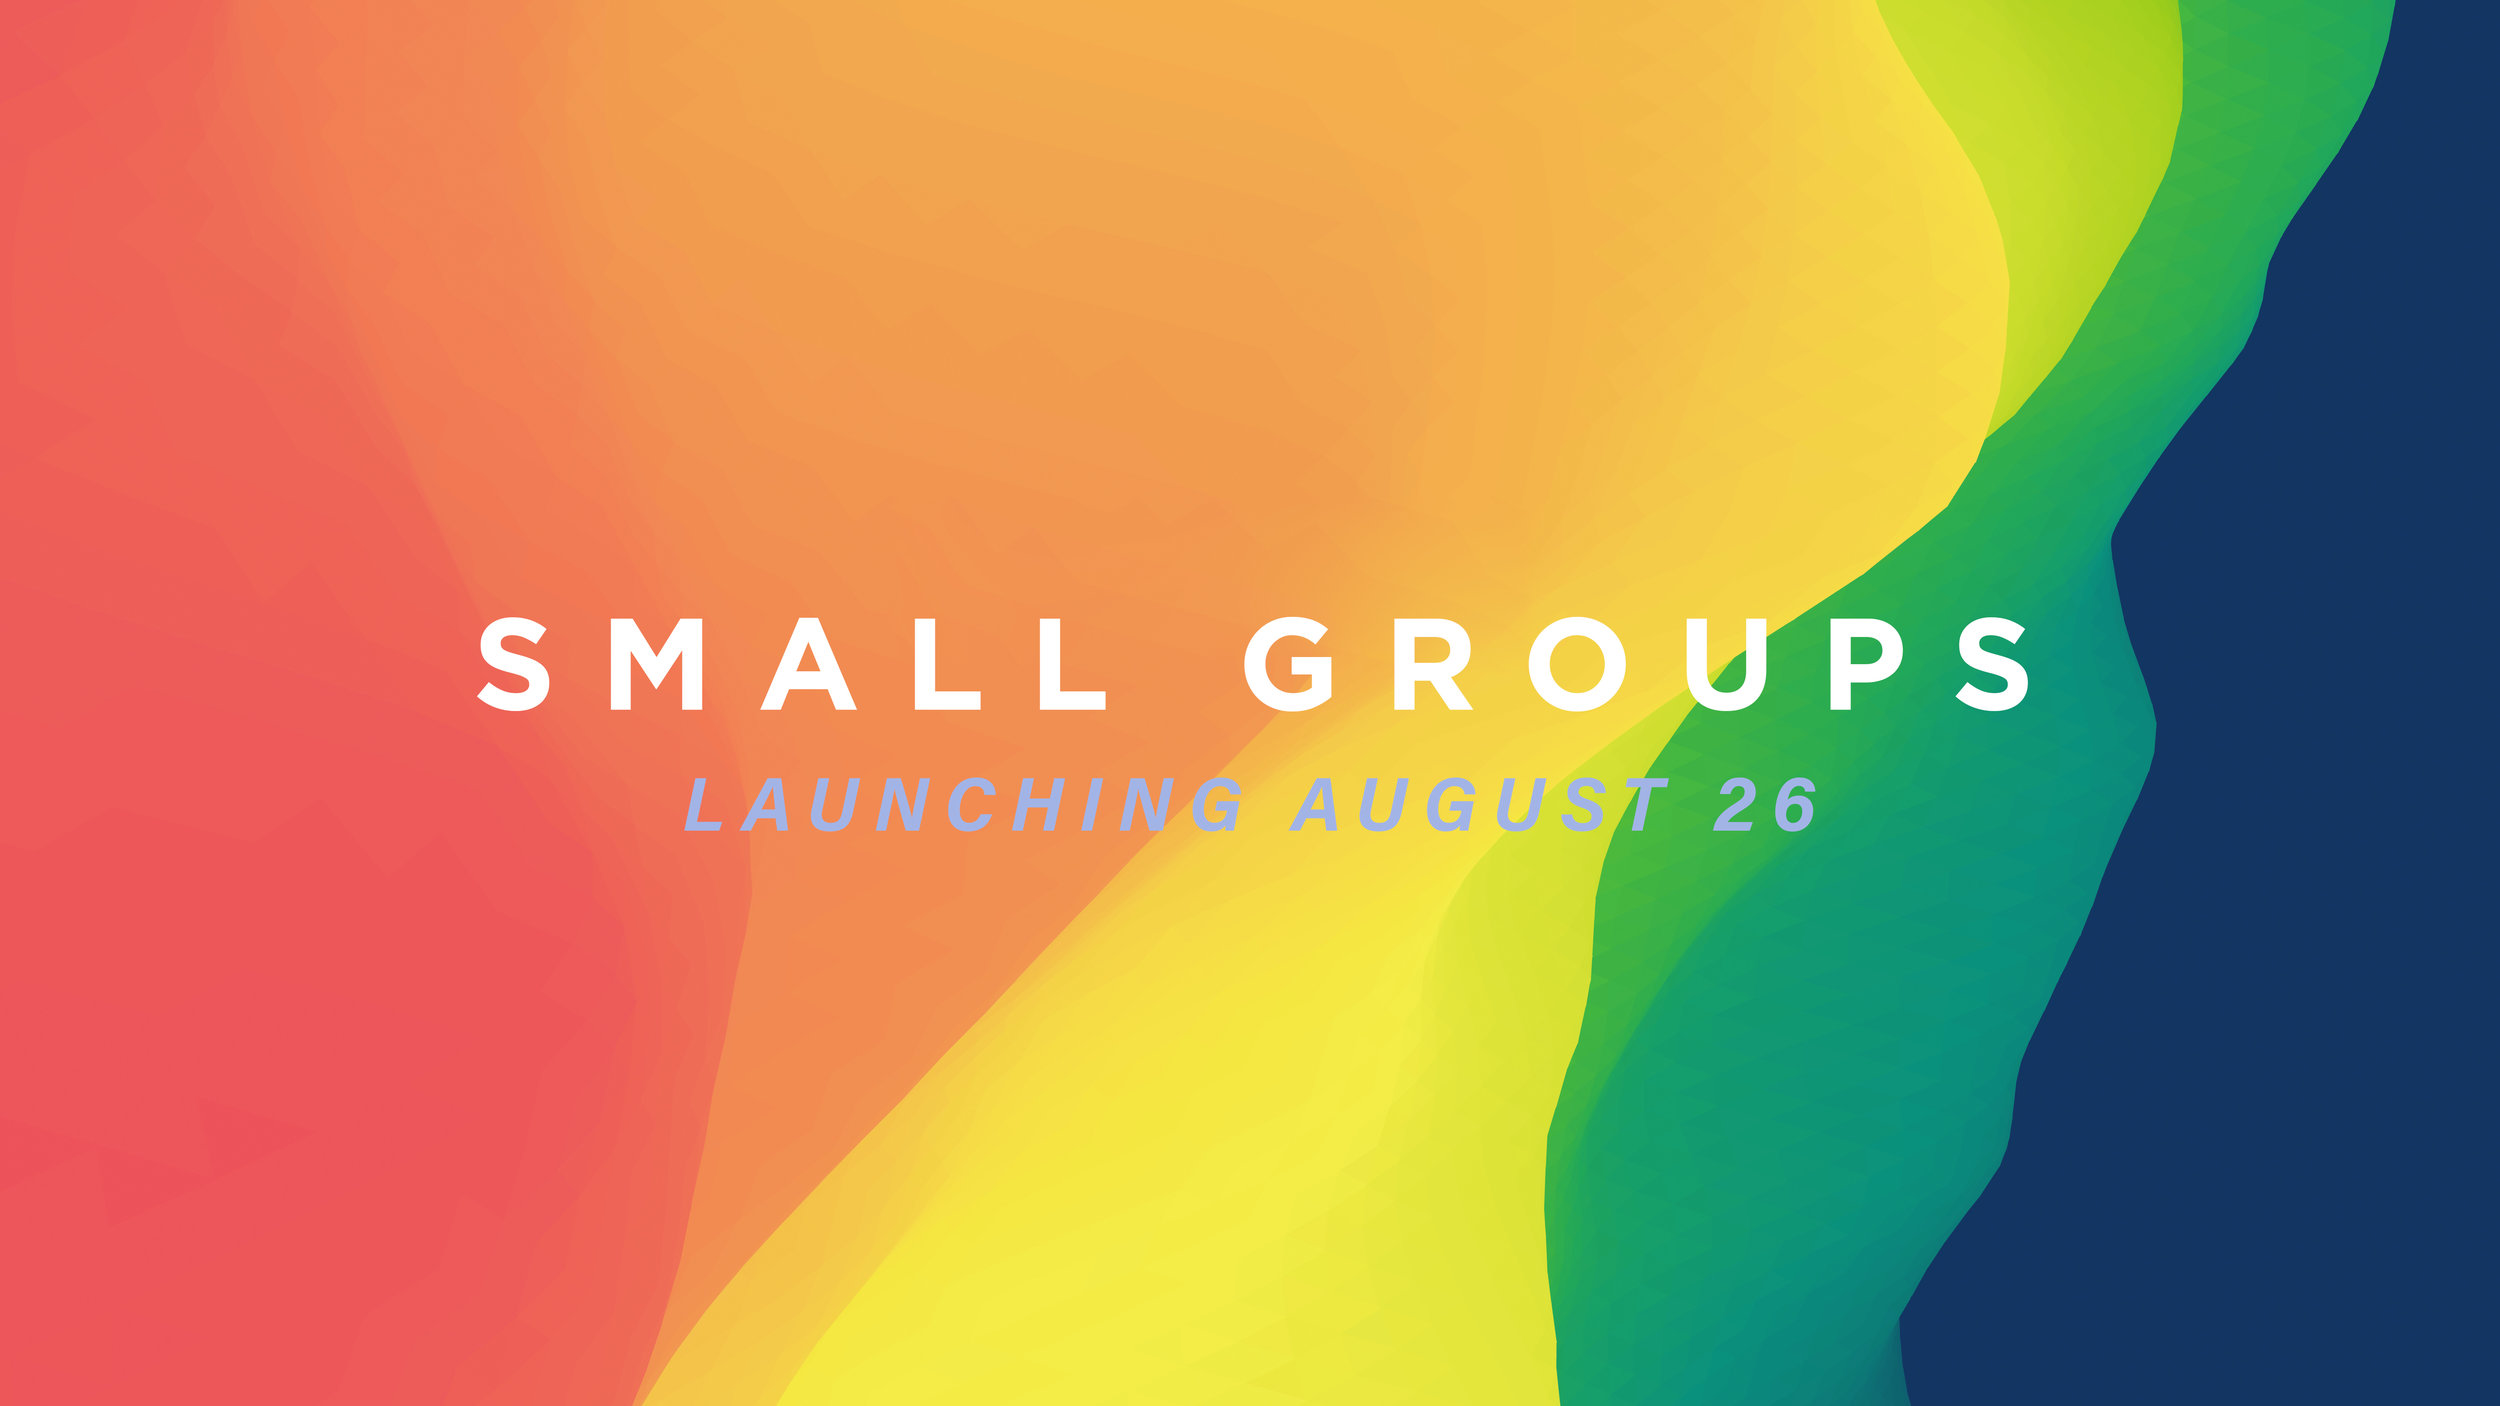 Small Groups26.jpg